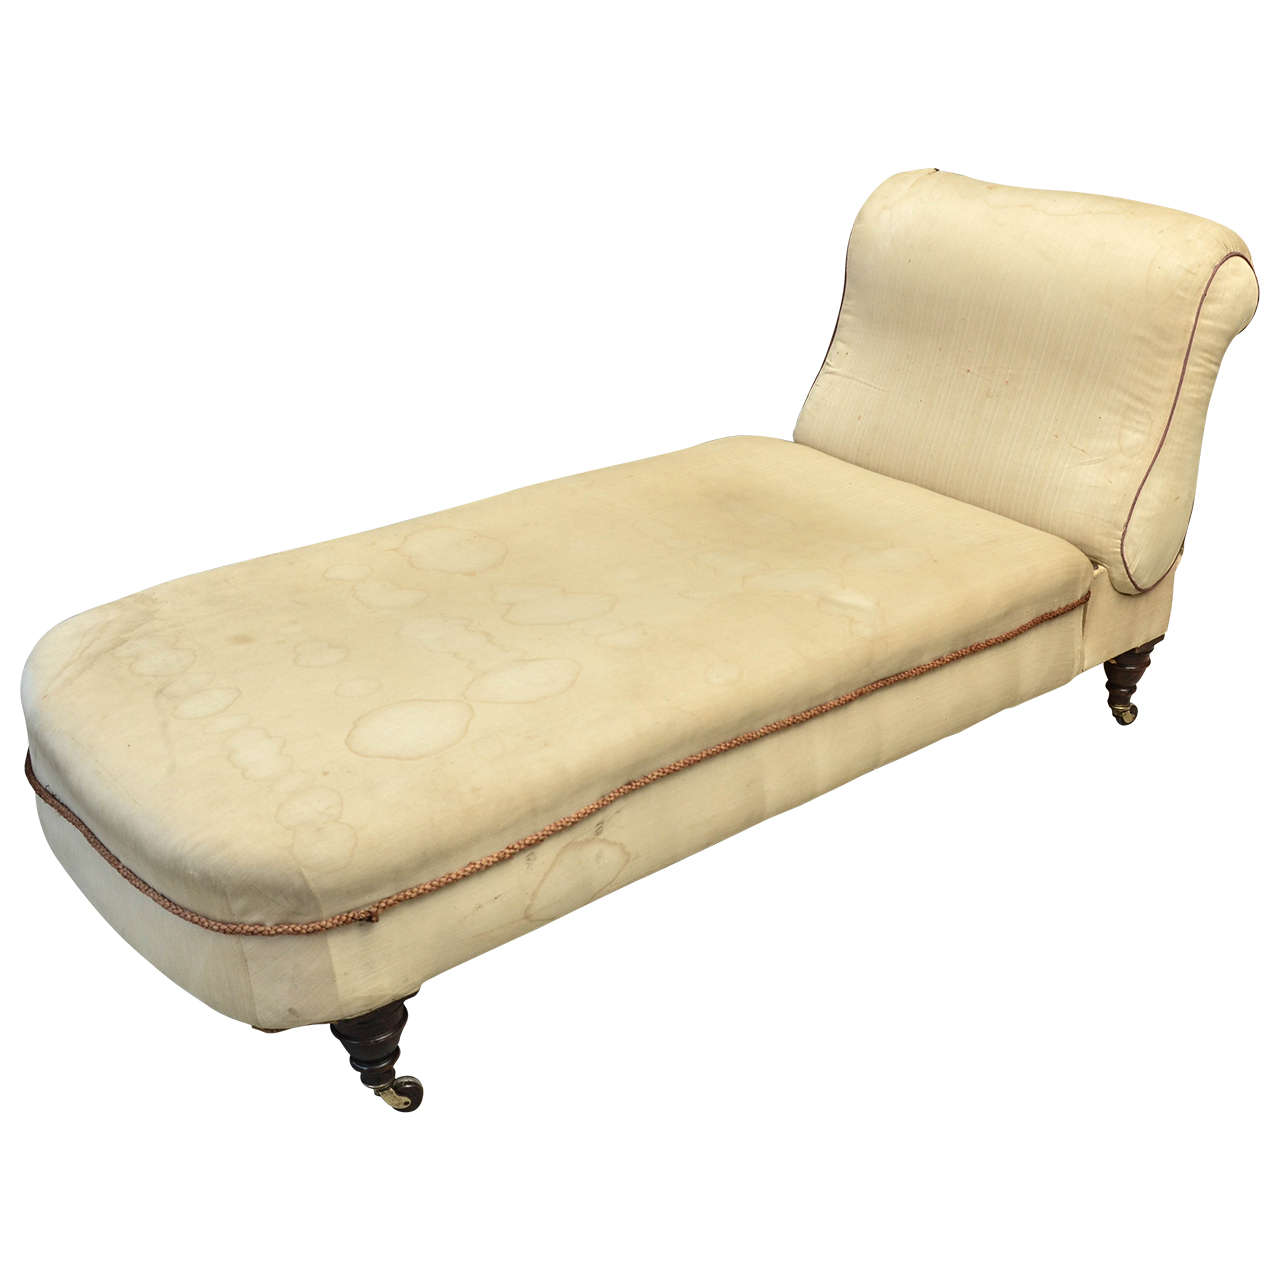 English victorian ratchet back chaise longue for sale at 1stdibs - Chaise longue in english ...